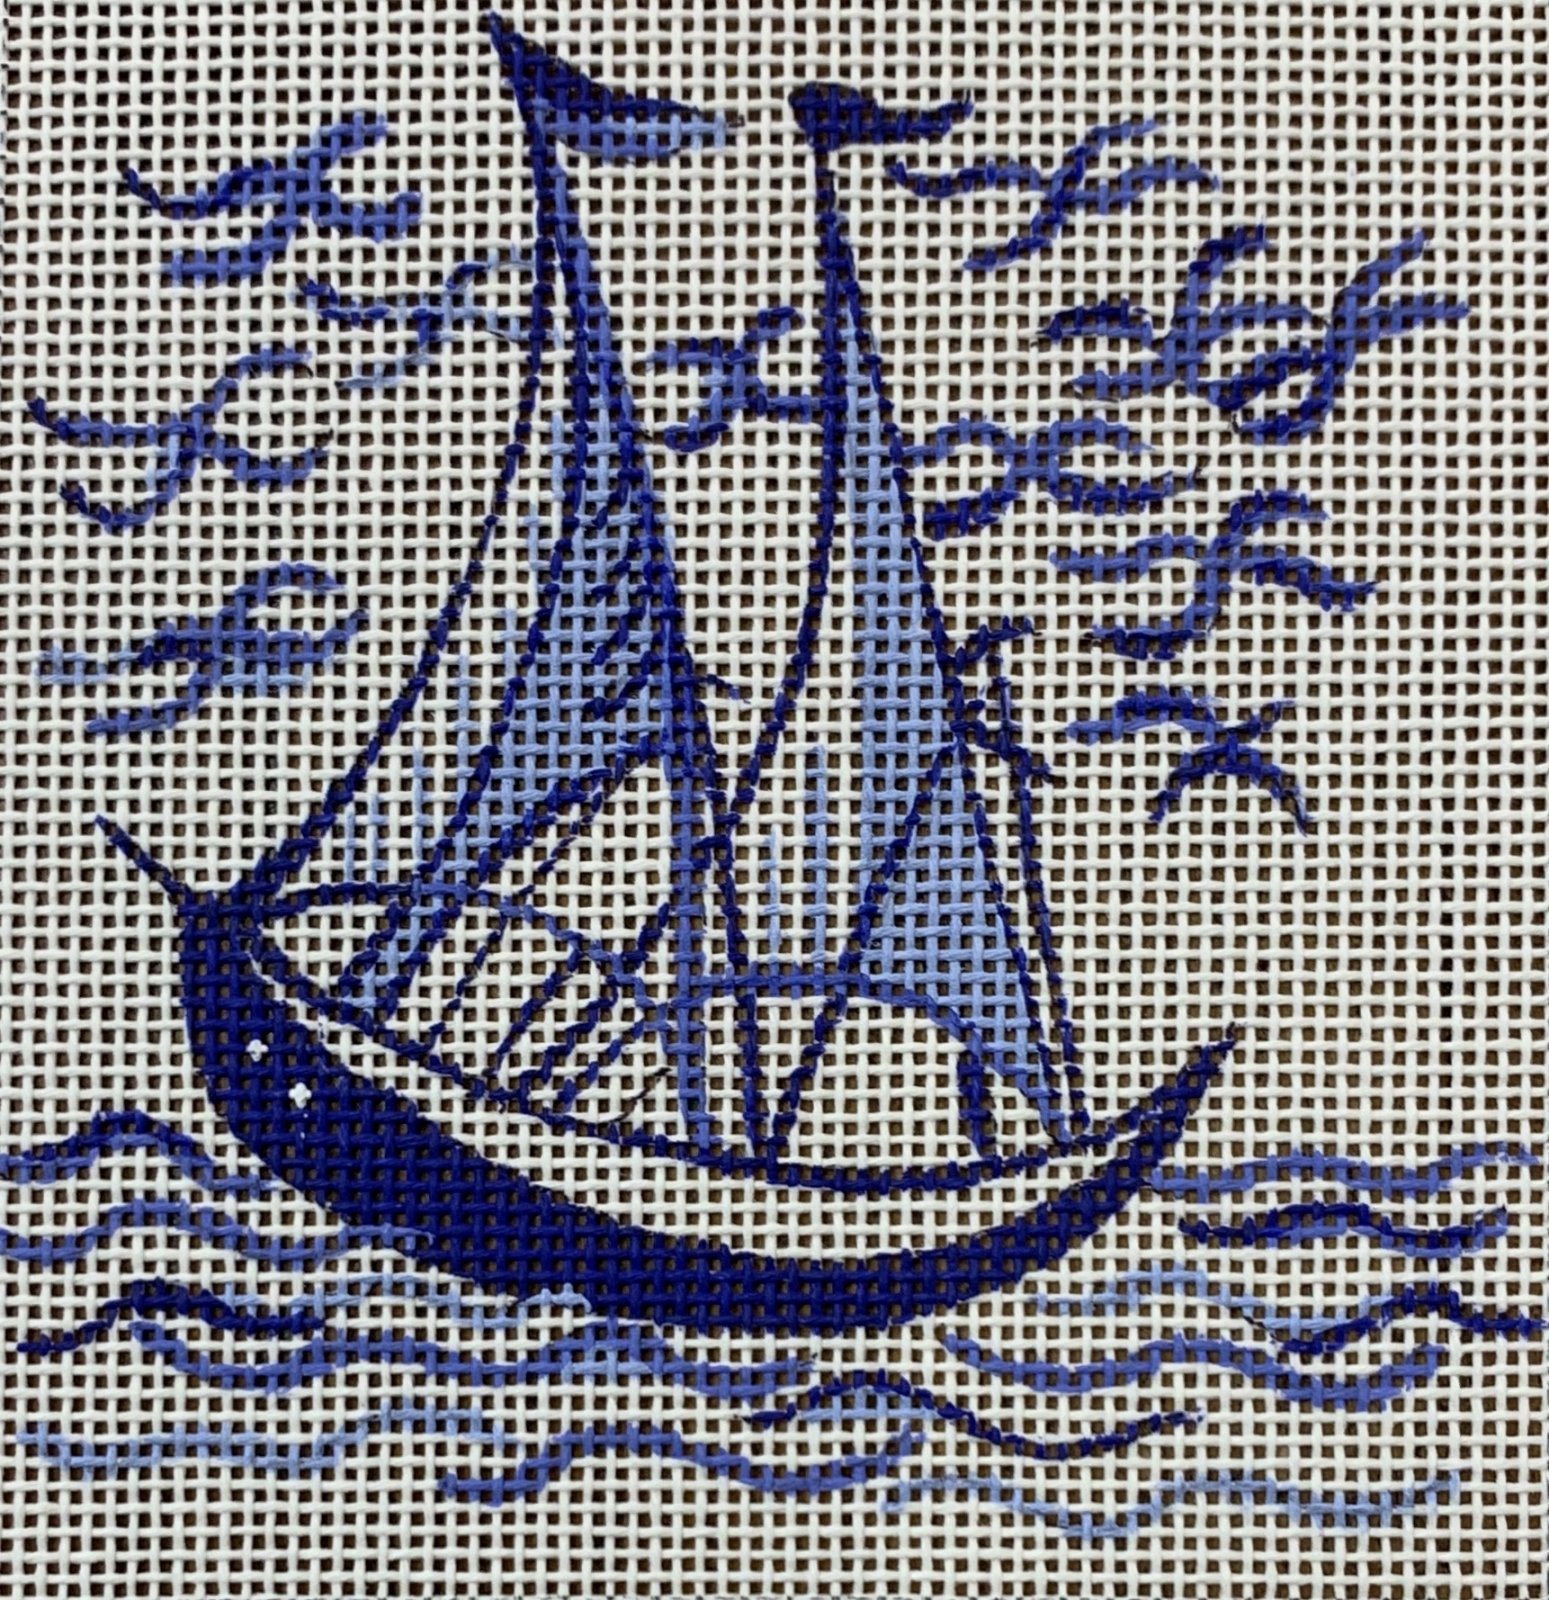 Delft Tiles Collection - Ship